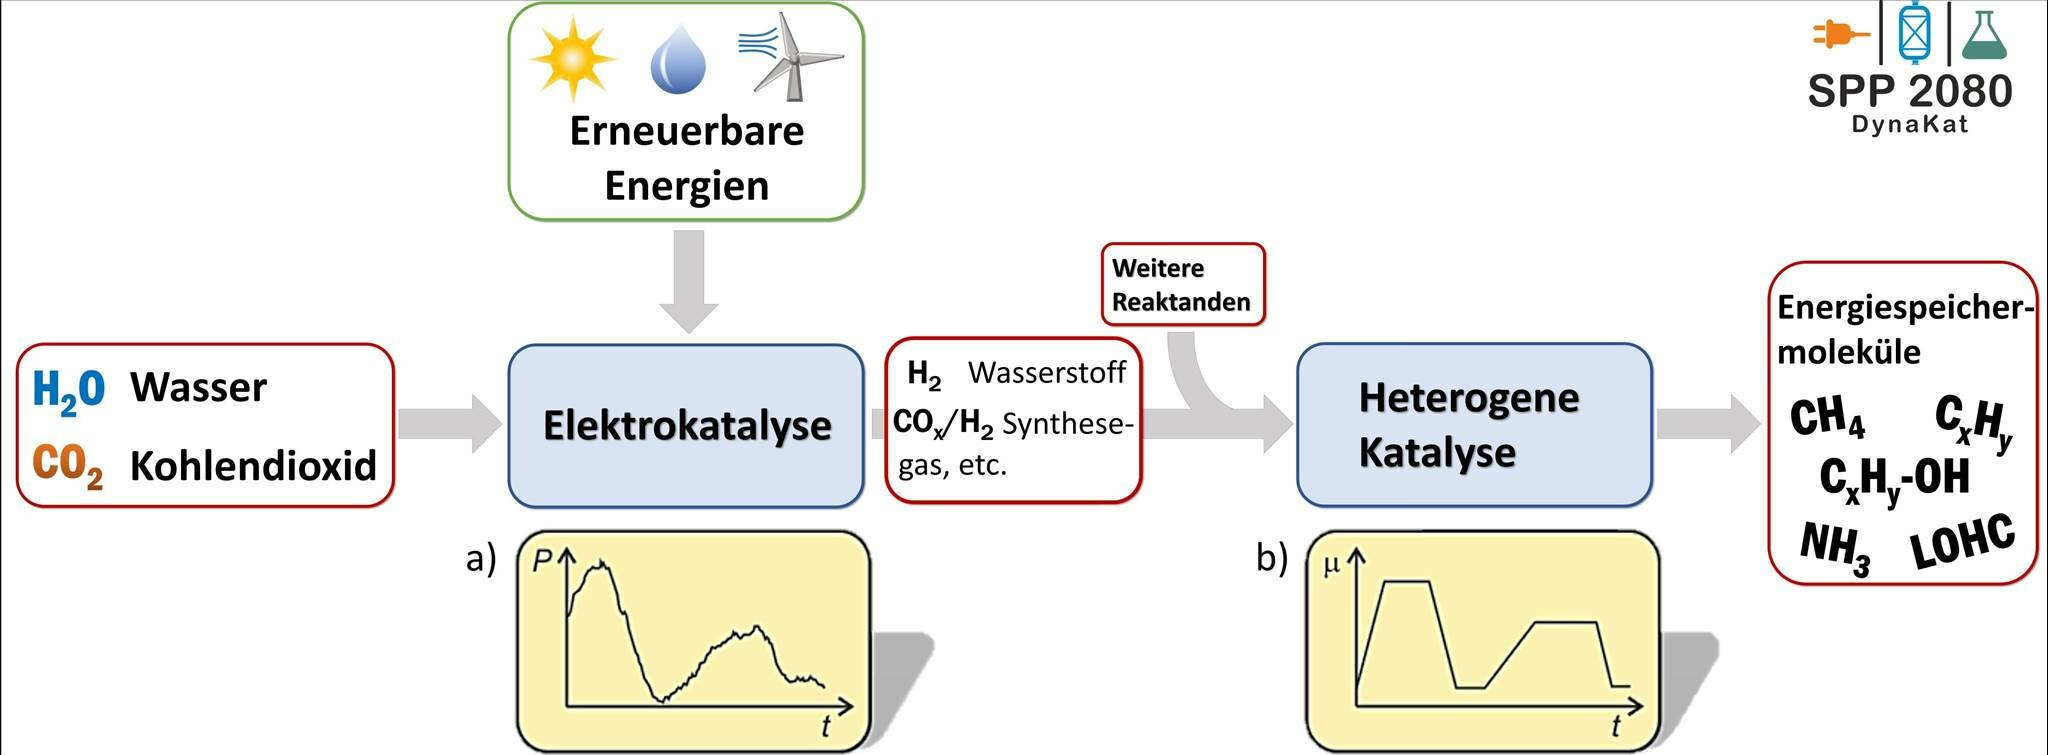 Chemical storage of renewable energies